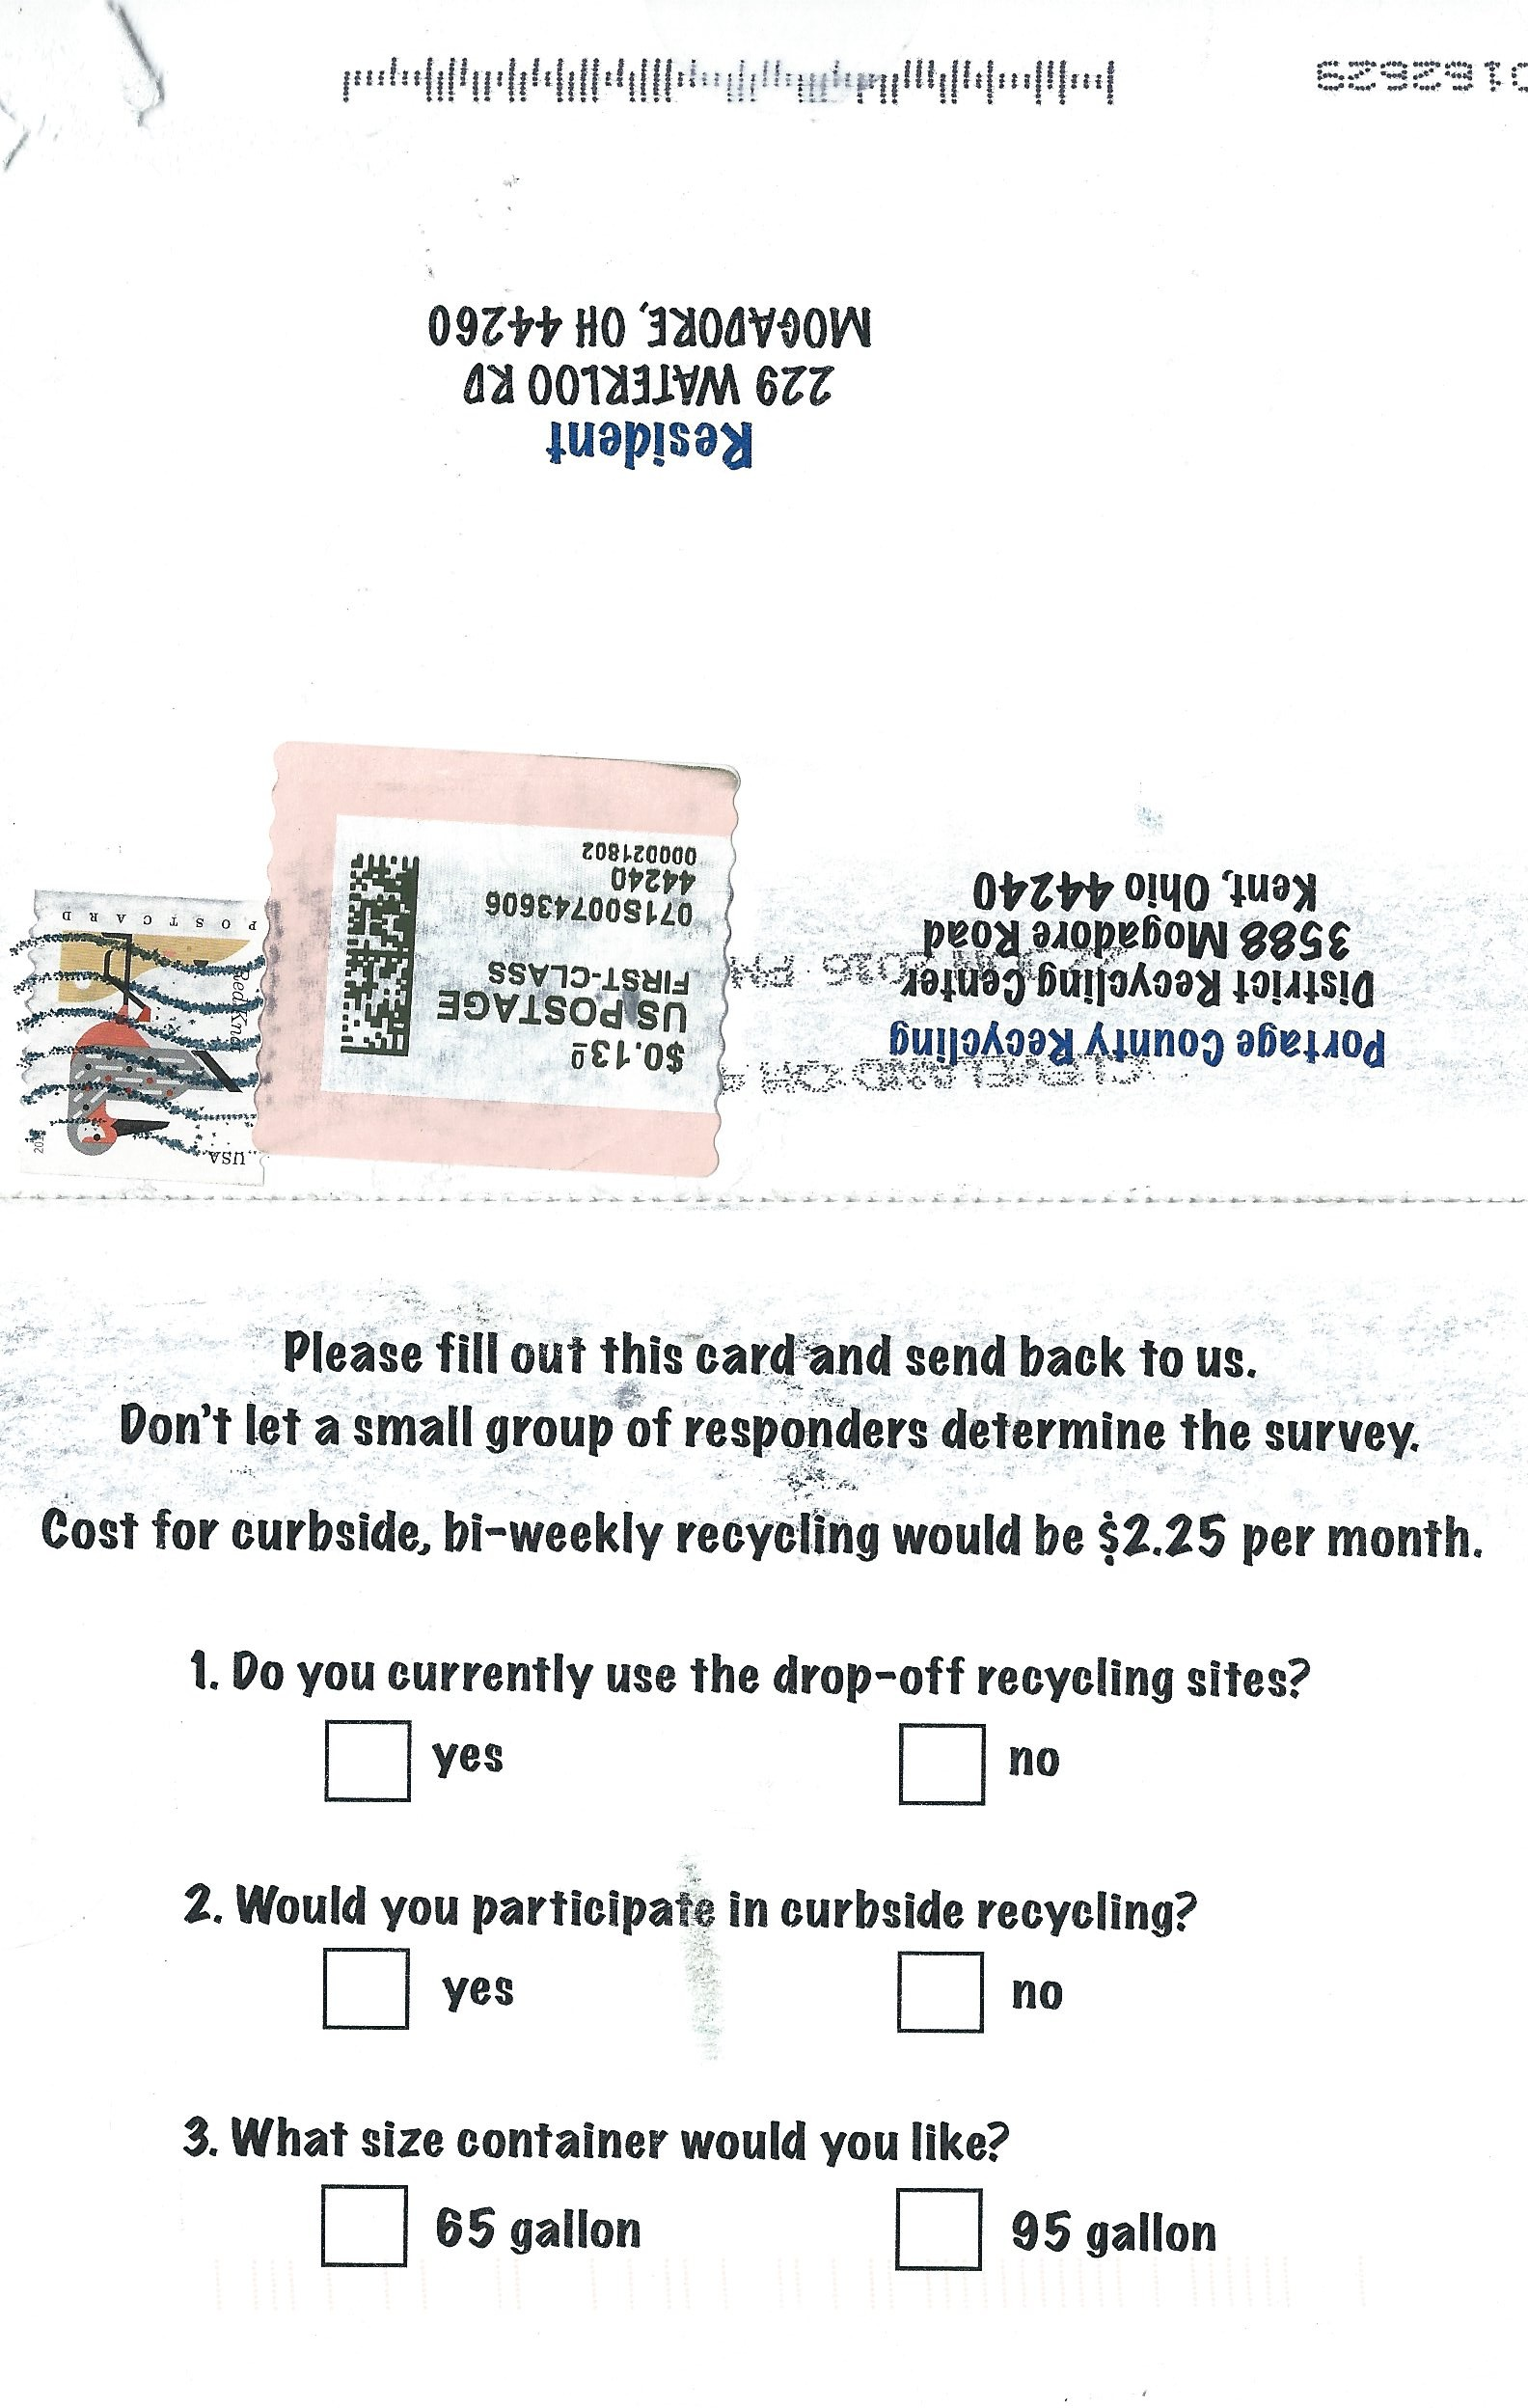 Recycle Poll Card 06 30 2016 A.JPG D